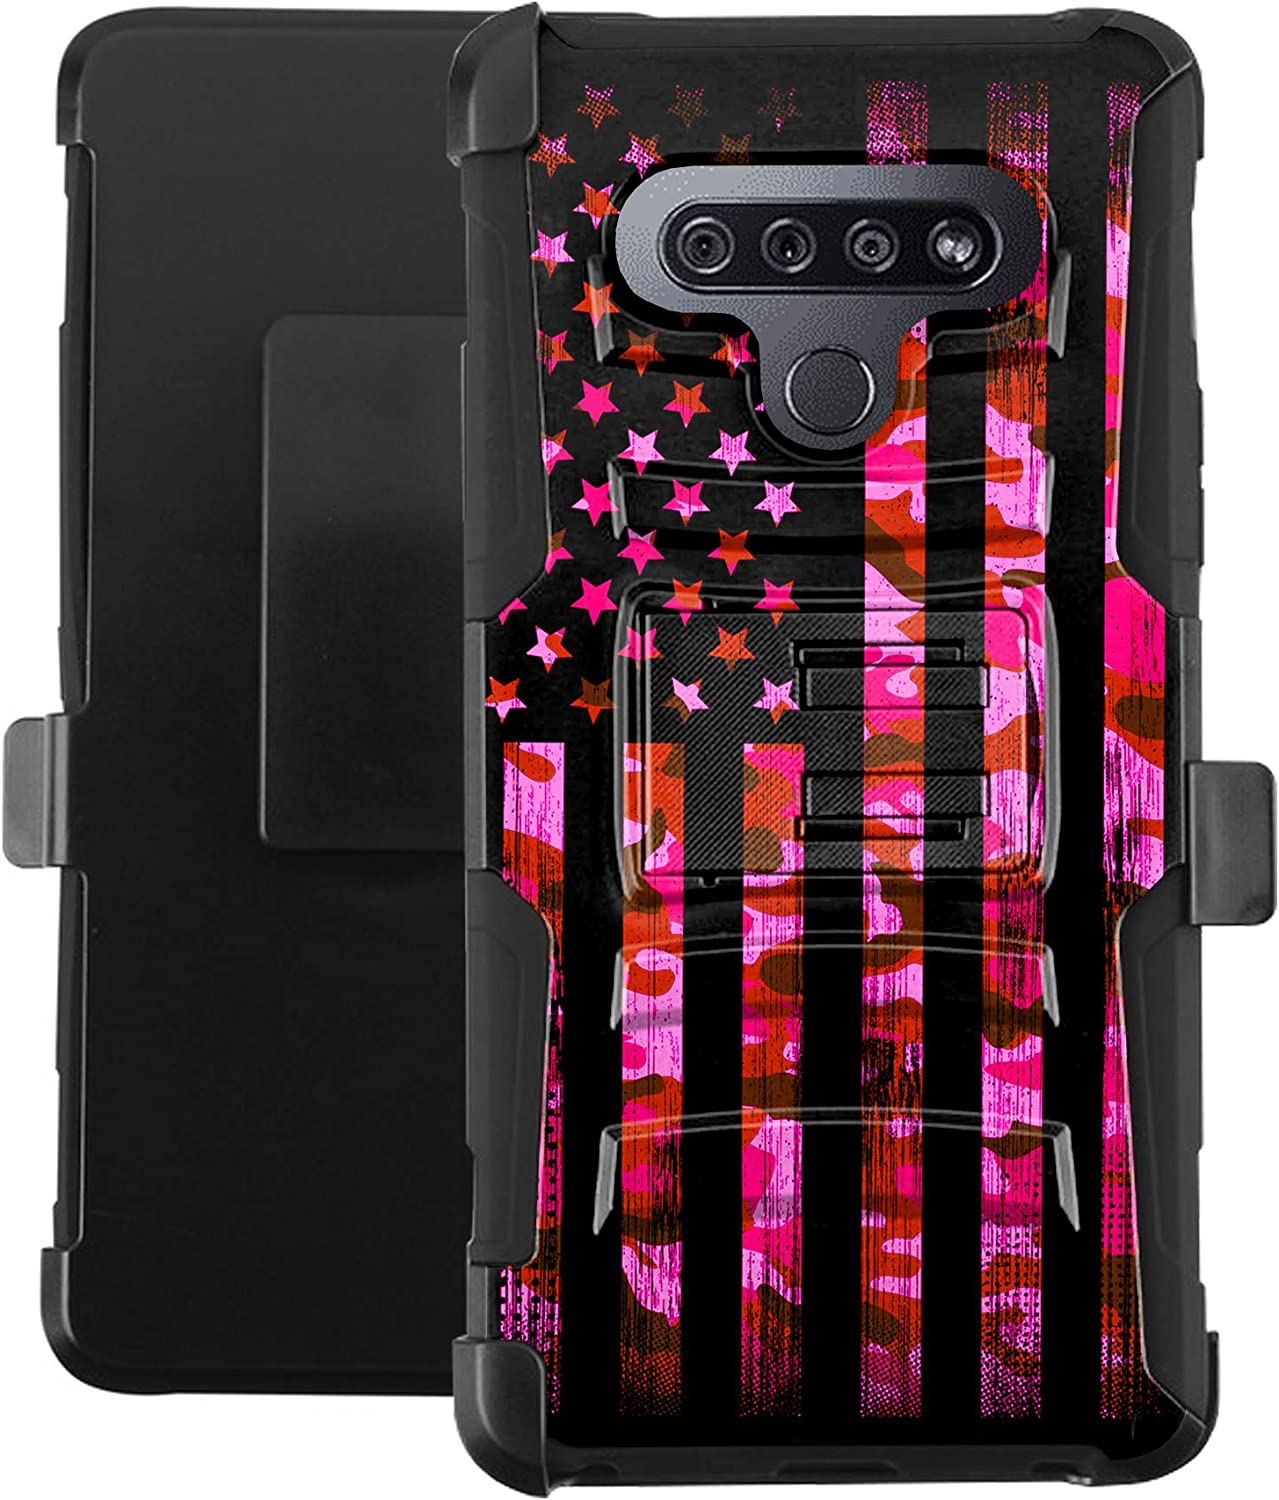 DALUX Hybrid Kickstand Holster Phone Case Compatible with K51 / Reflect- Pink Camo US Flag